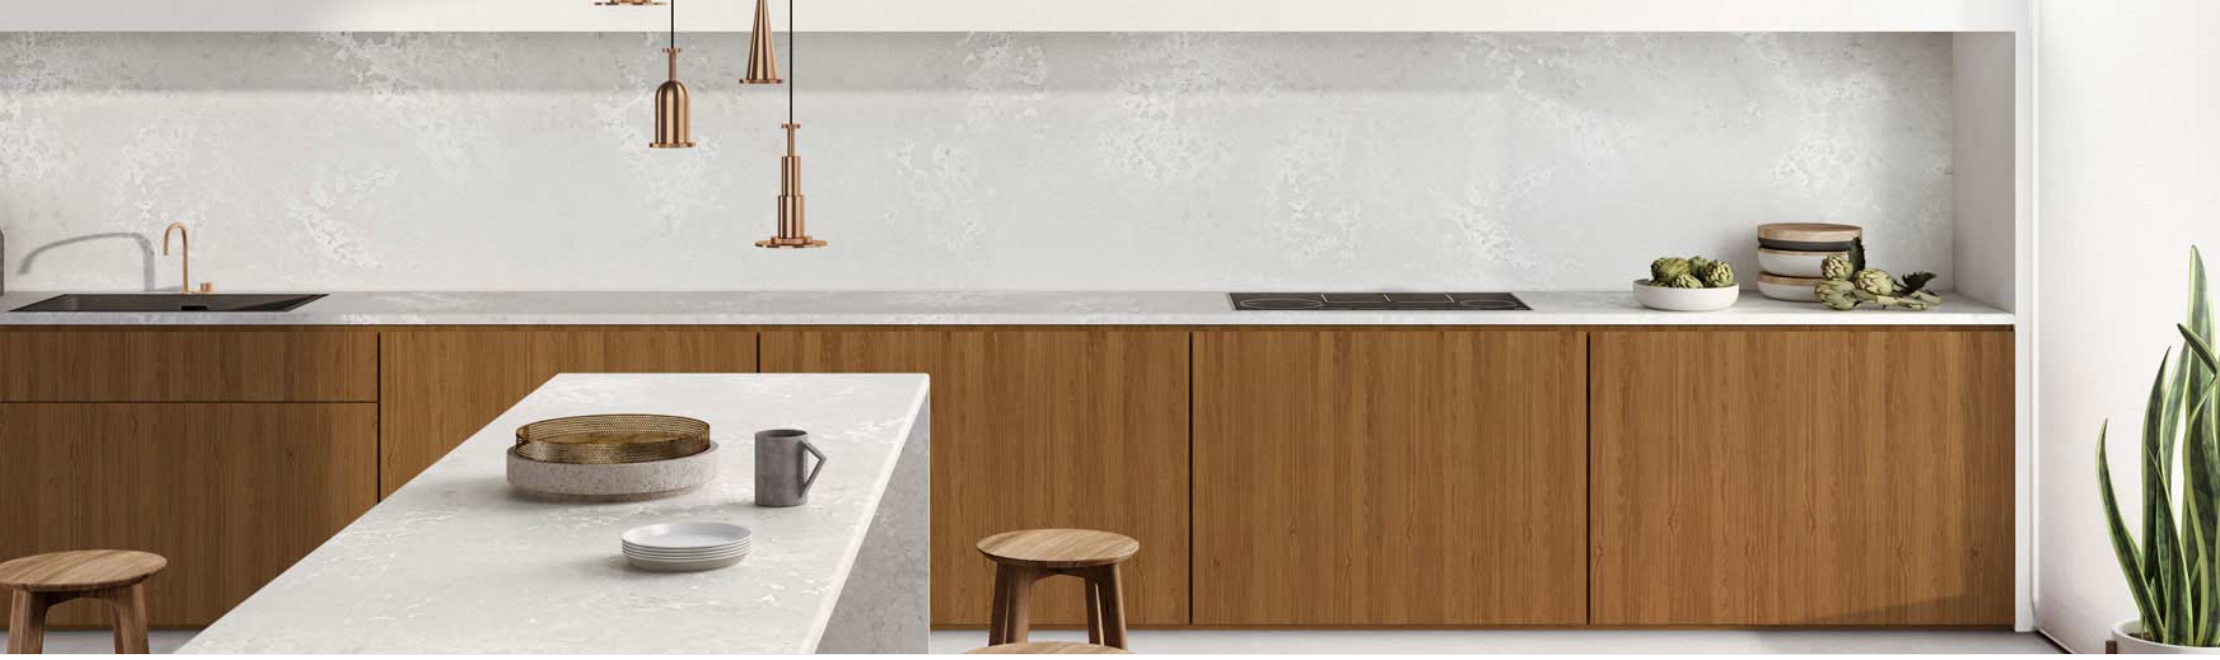 CAESARSTONE | CLOUDBURST CONCRETE | KITCHEN